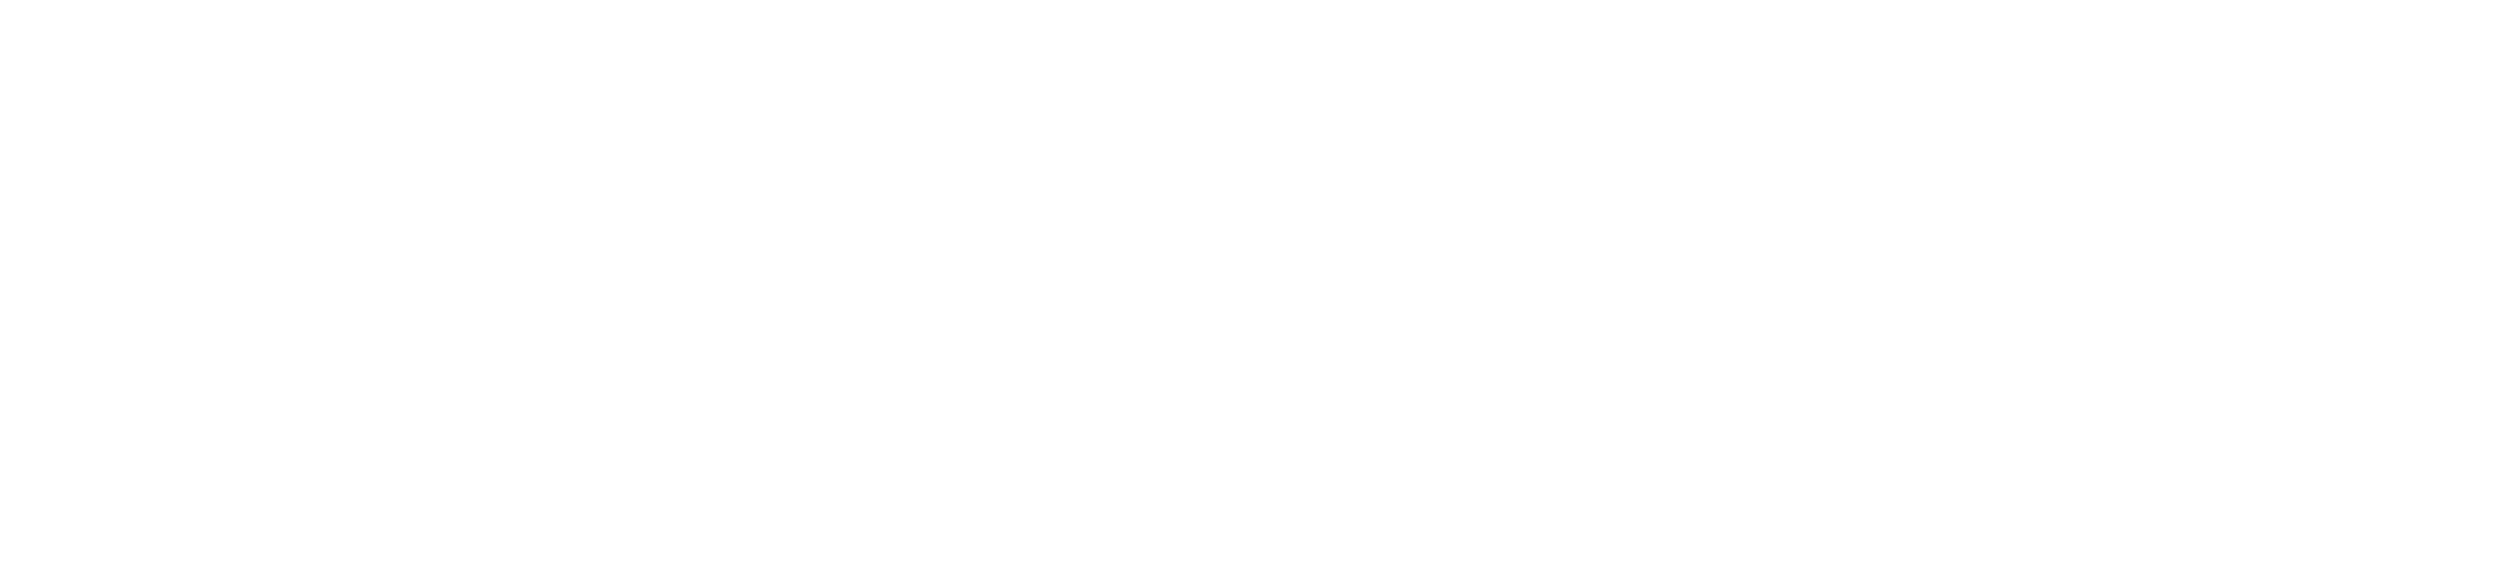 illuminateChurch_white_logo.png